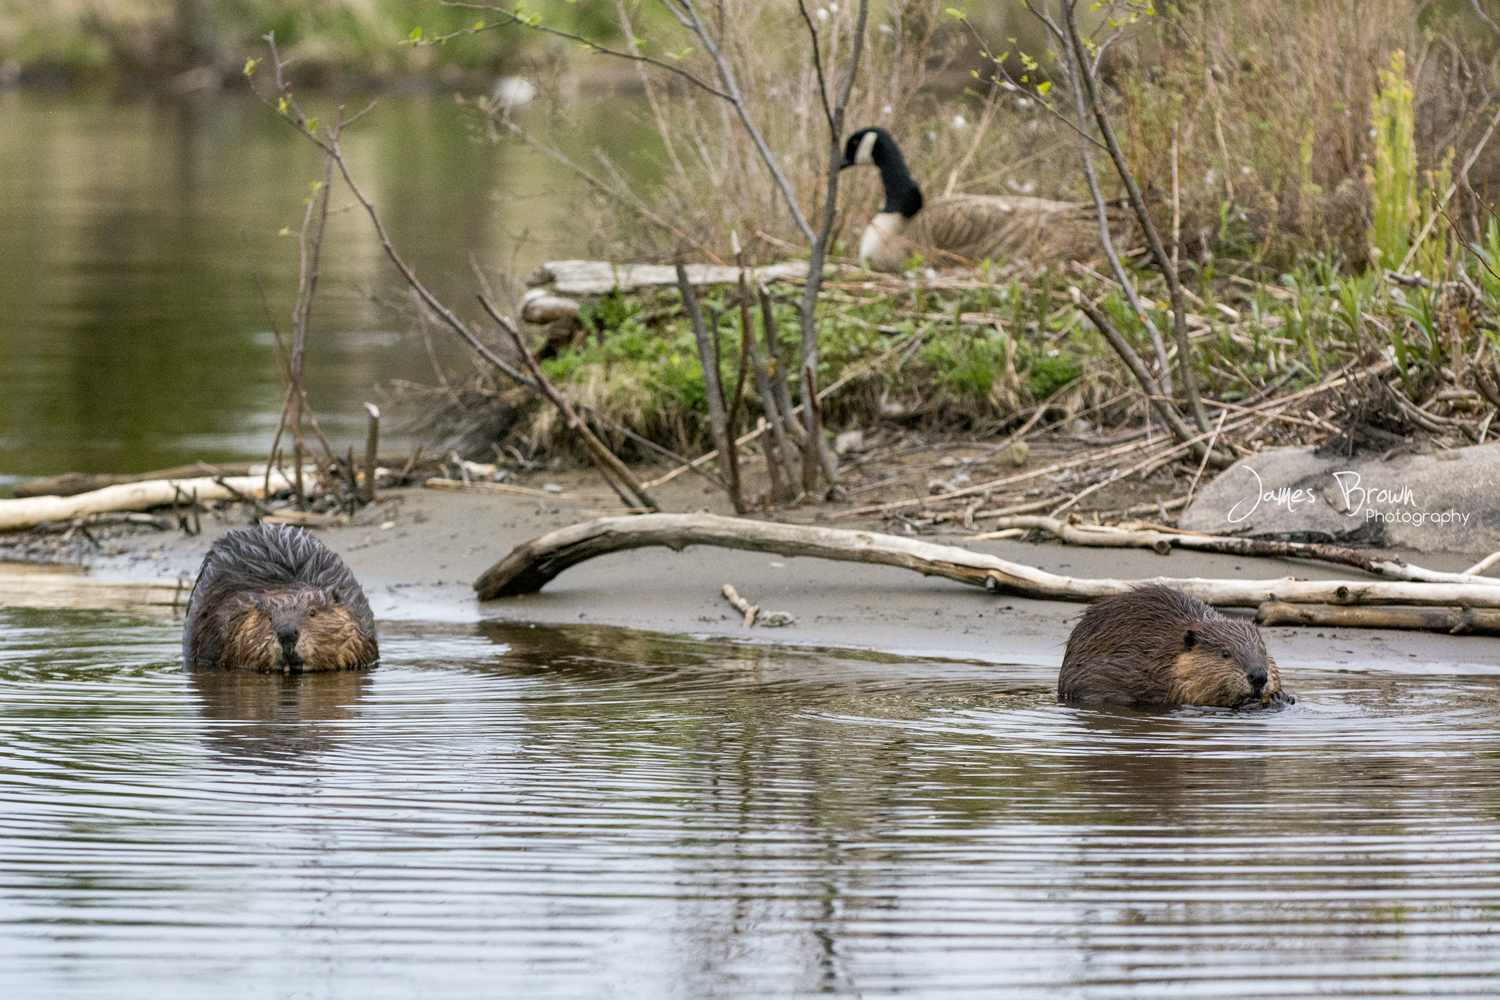 A couple beavers in the water near a goose